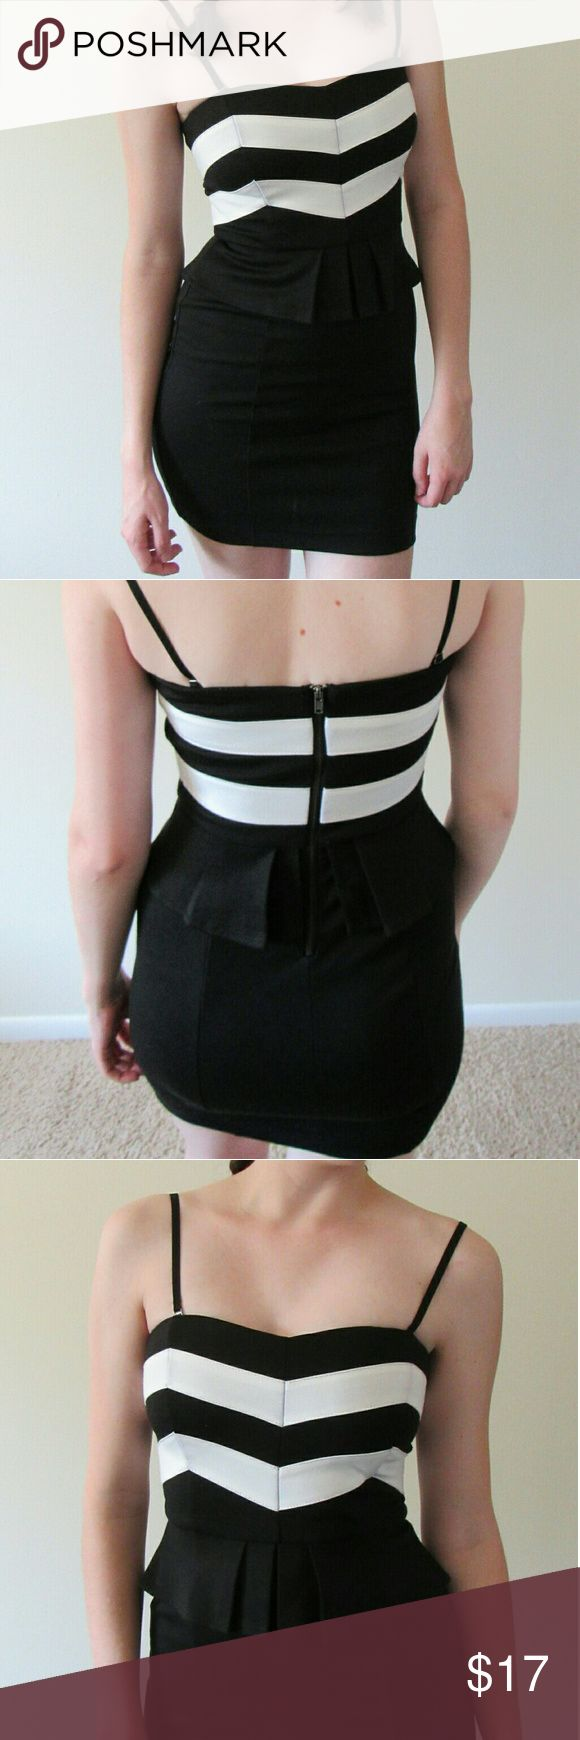 Black and white Peplum dress w/ Convertible Straps Strappy or strapless dress! (Straps can be removed) Sweetheart neckline, chevron detail across bust, padded fabric on front Bodycon, stretchy comfortable fabric Length hits around mid-thigh   Great condition, like new! Worn only 2-3 times  💜 I consider all offers (no low-ball, no trades) 👉 if you need more info or photos, message me or comment! Forever 21 Dresses Mini